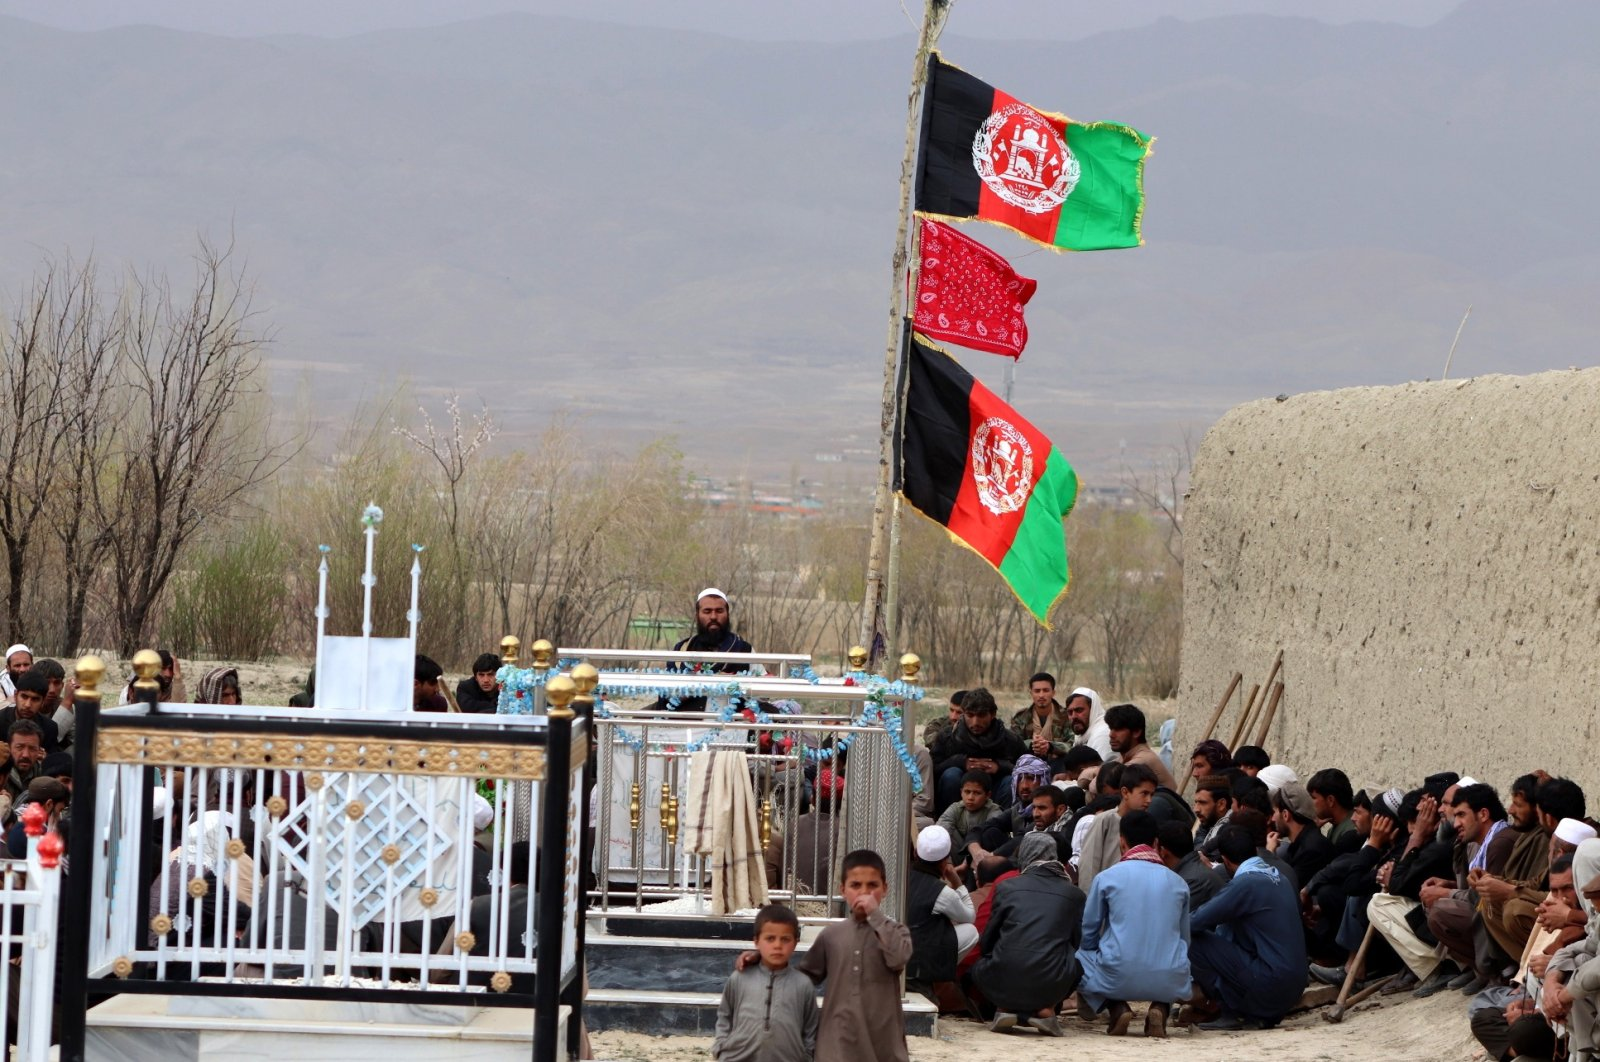 People attend the funeral of Afghan soldier Sherullah Gardezi, one of nine soldiers who died in a military helicopter crash in Maidan-Wardak province, in Paktia, Afghanistan, March 19, 2021. (EPA Photo)